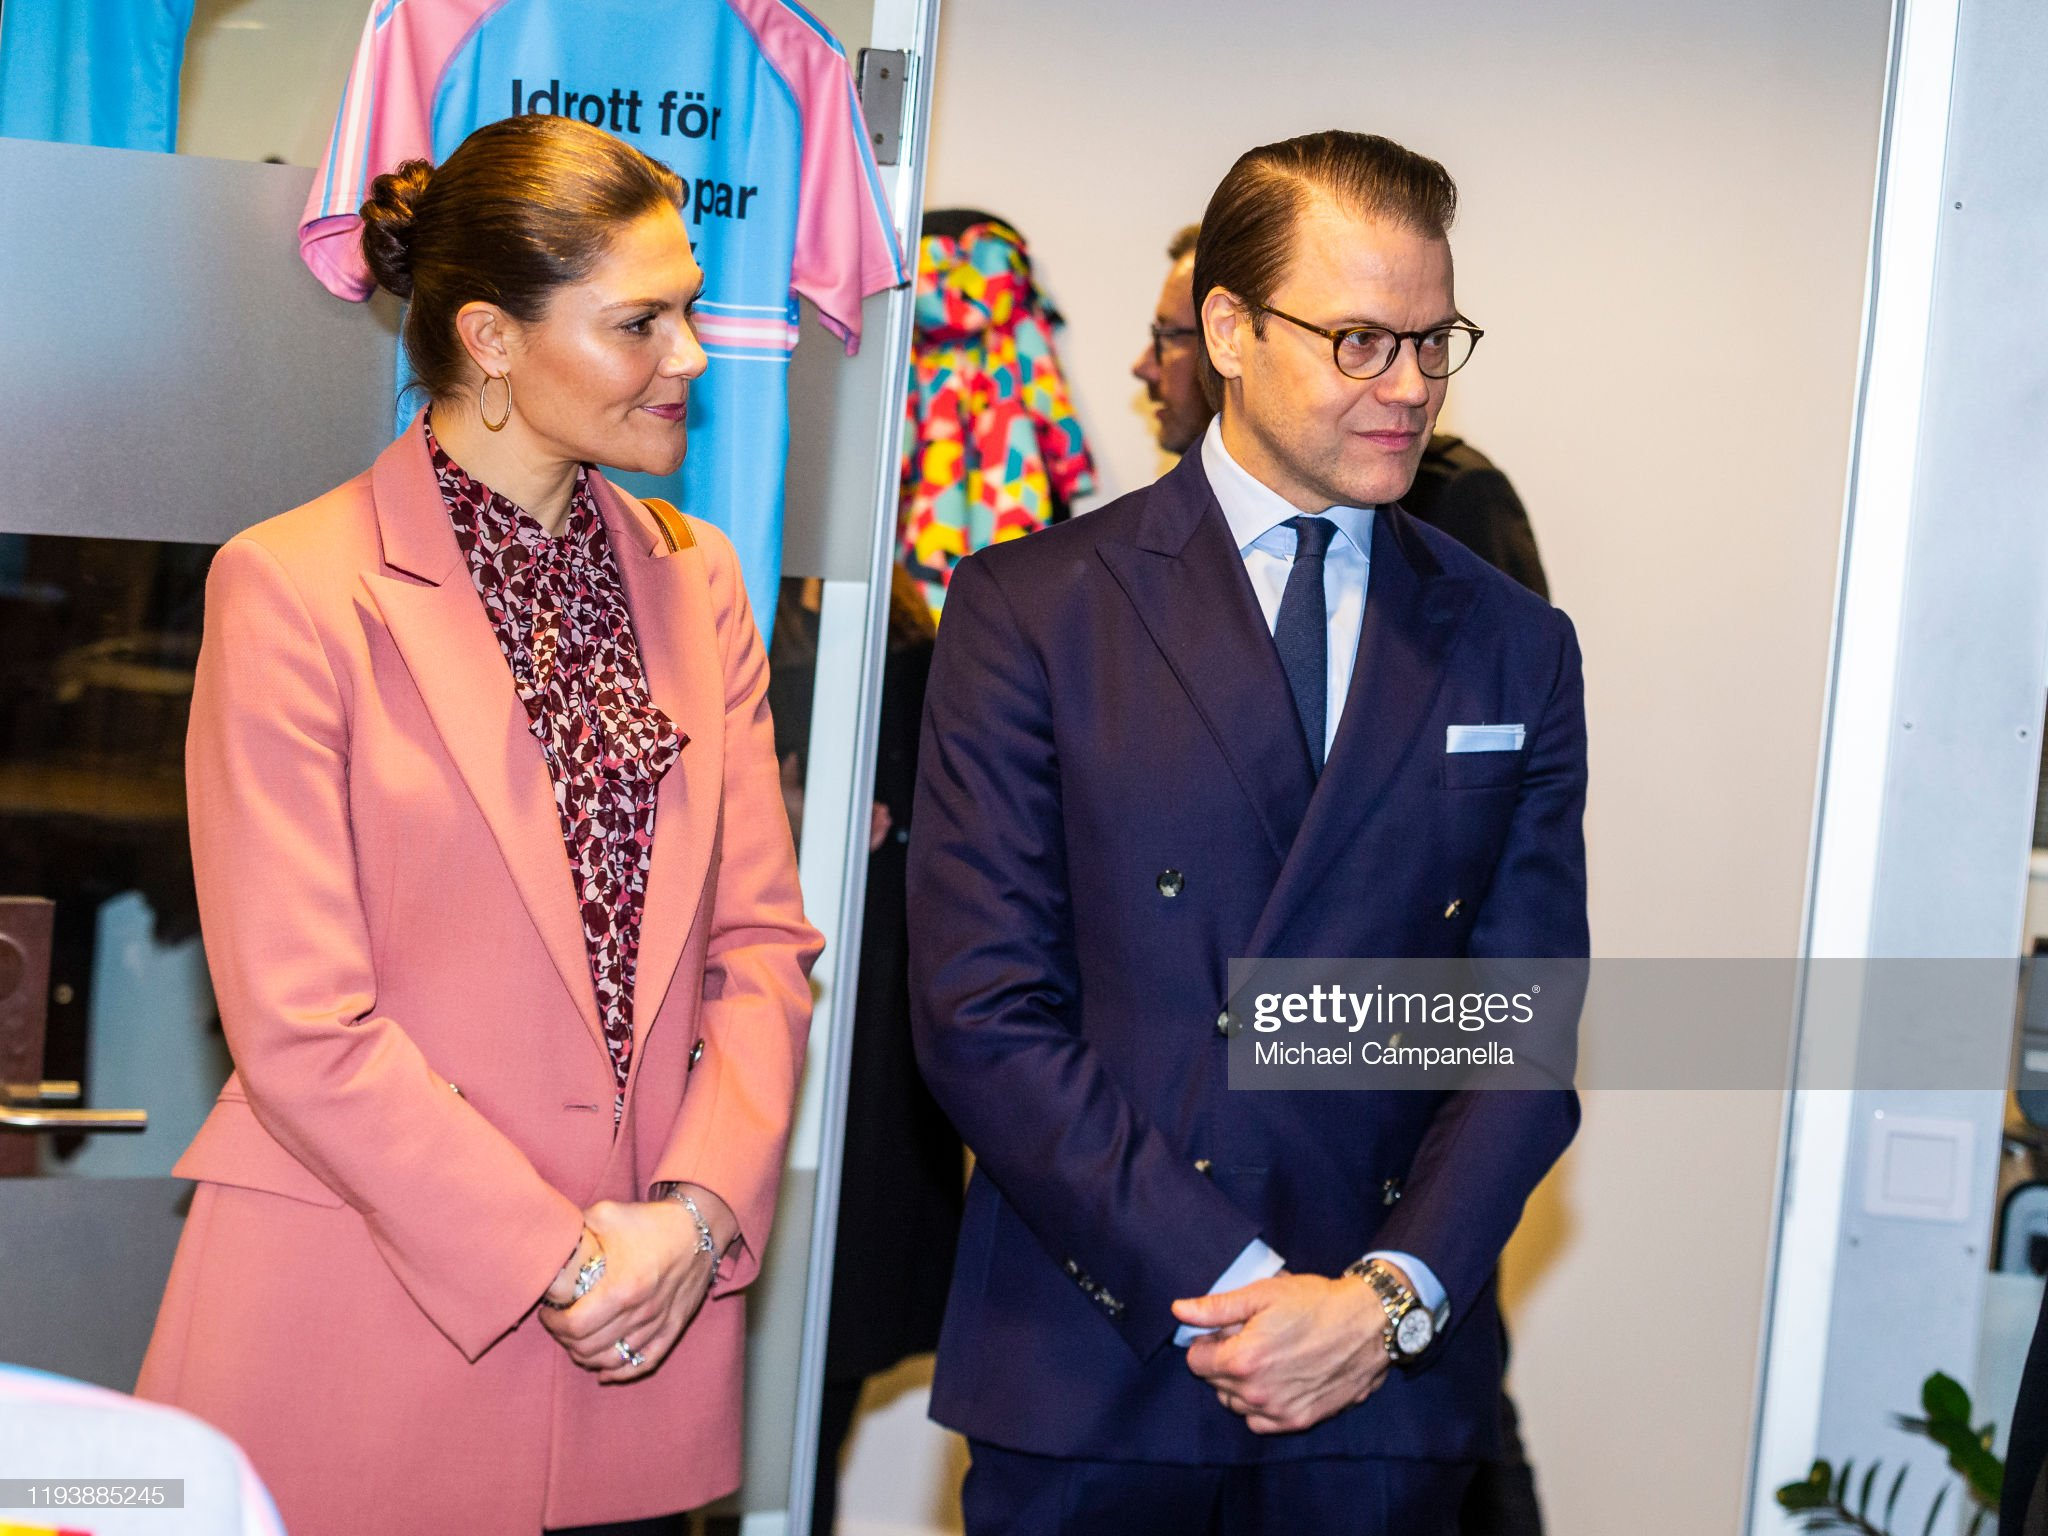 crown-princess-victoria-of-sweden-and-prince-daniel-of-sweden-visit-picture-id1193885245